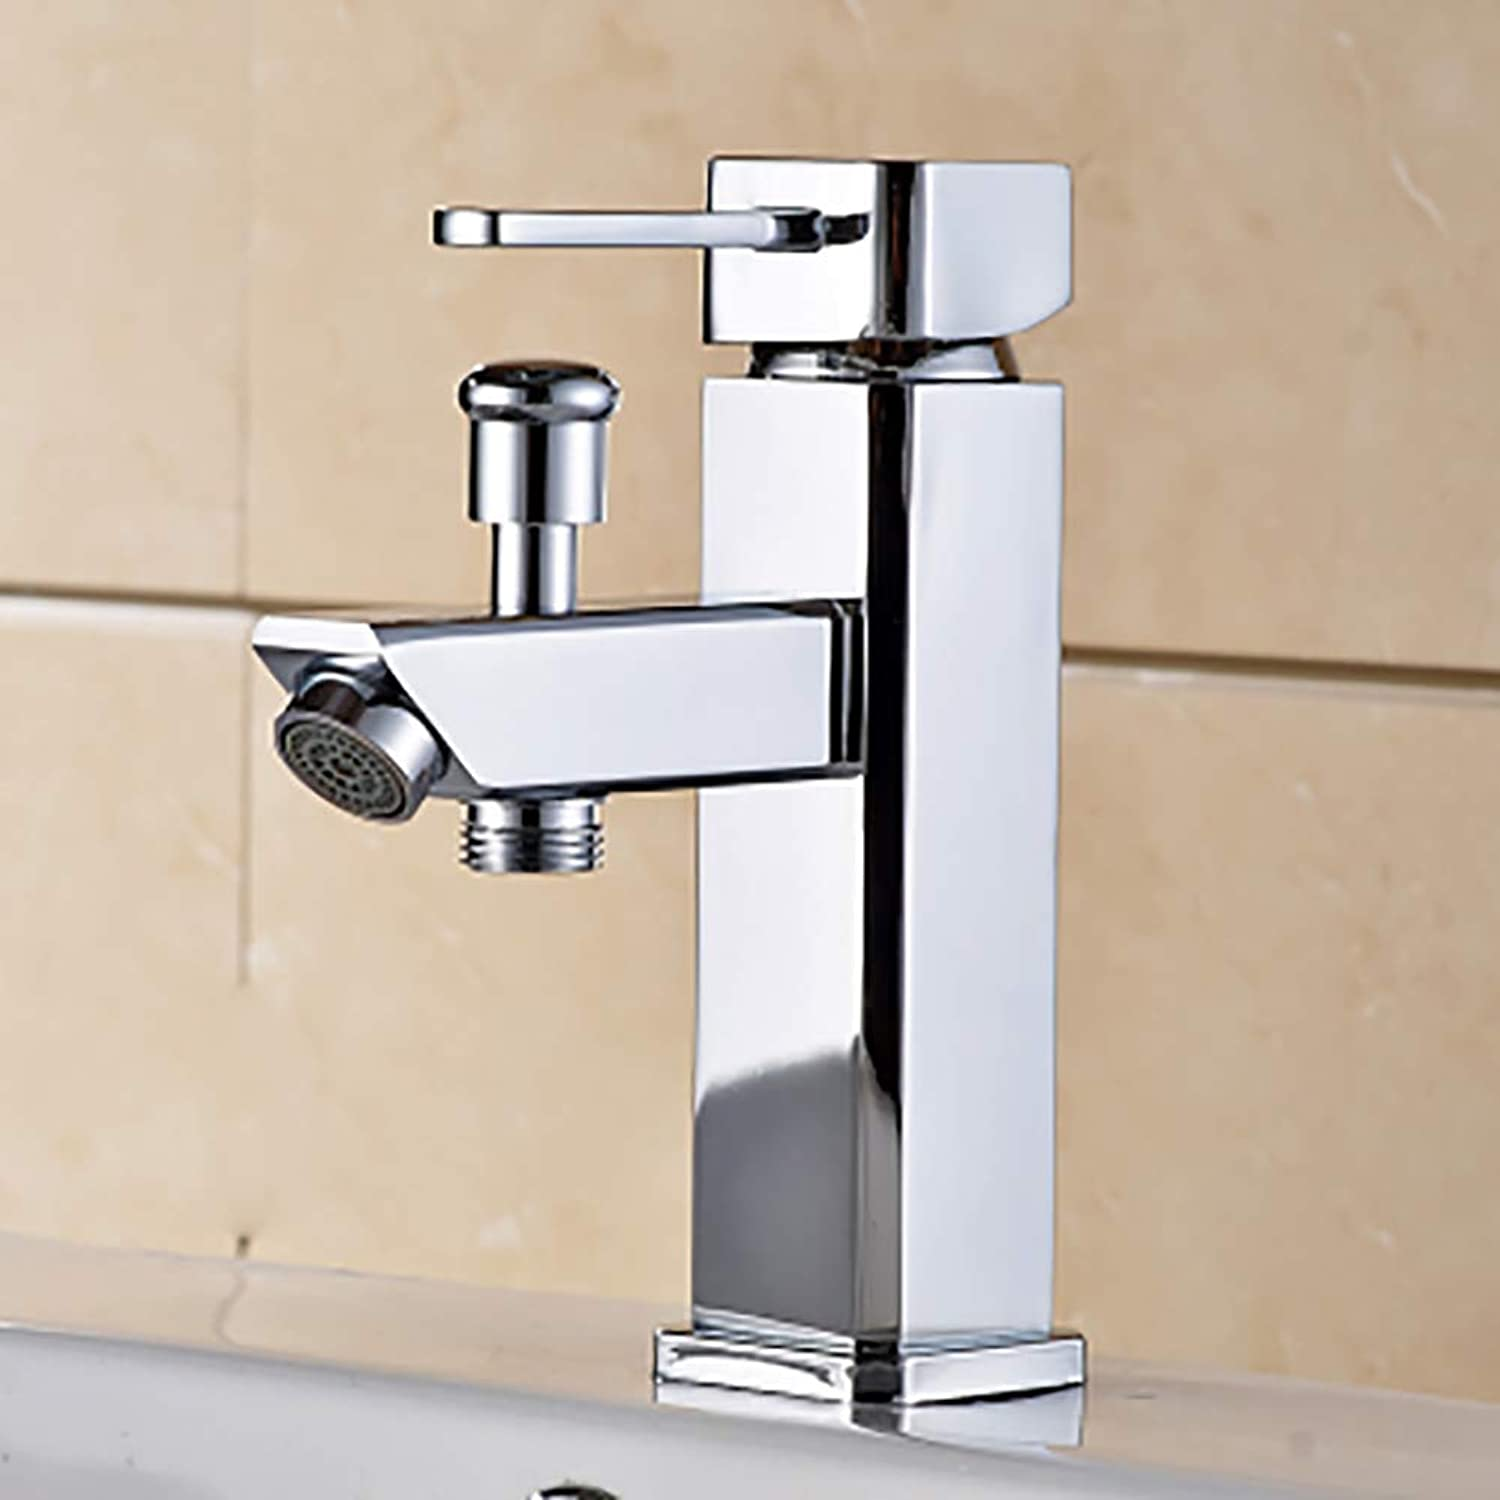 Sink Faucet, Kitchen Bathroom Vanity Mixer Tap Chrome Lead-Free Drip-Free Rust-Resistant Modern with Hose-B